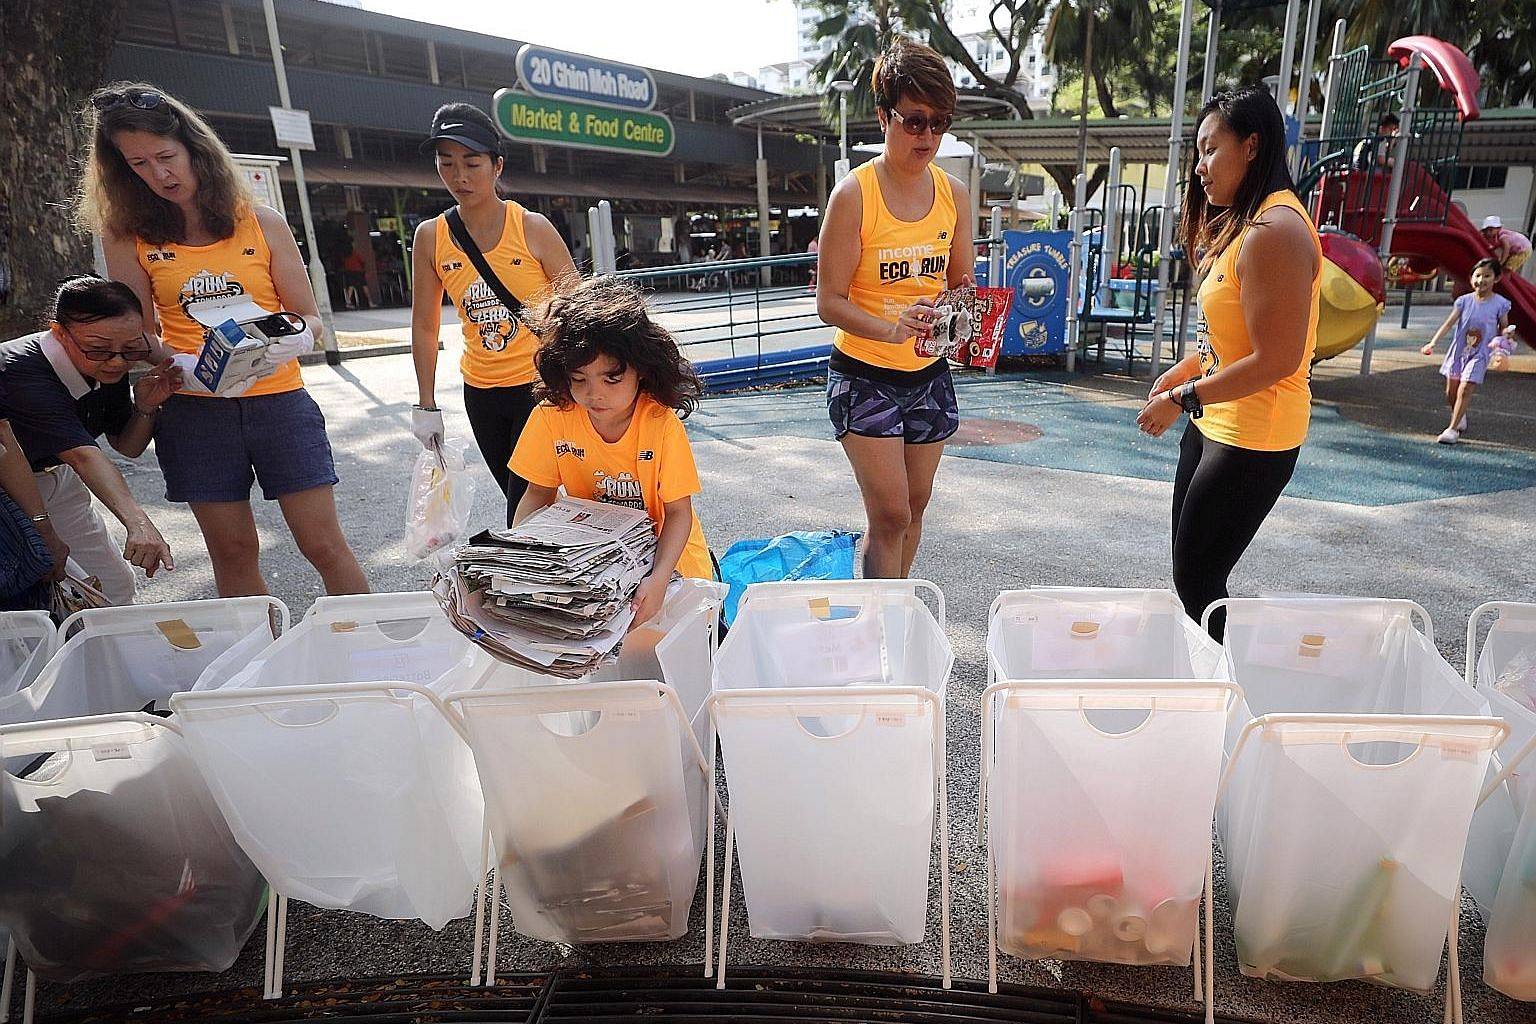 Seven-year-old volunteer Leni Vasu (left) placing newspapers into sorting bins, while Tzu Chi Foundation volunteers (above) sort out plastic items. All the items were contributed by the public at a collection point in Ghim Moh yesterday. Tzu Chi Foun